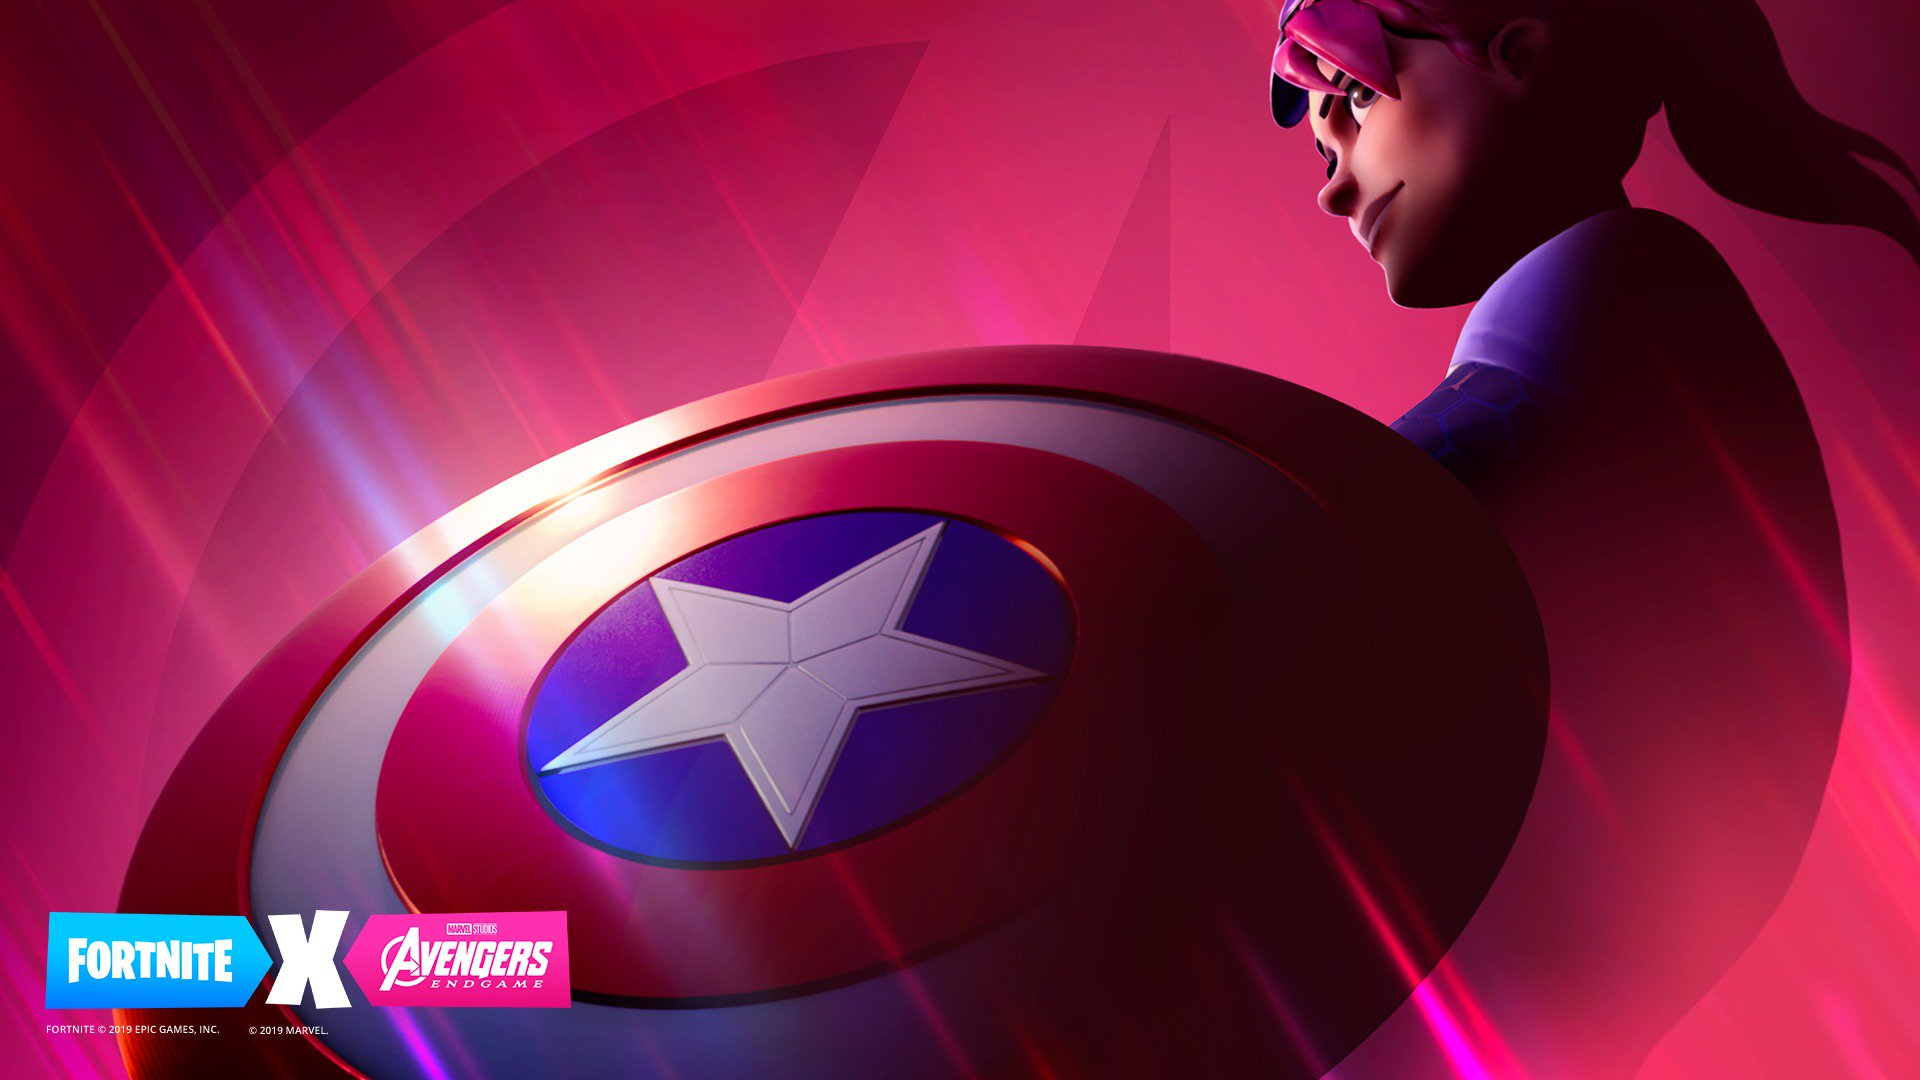 Fortnite Teams Up With Avengers Endgame For Another Tie In On April